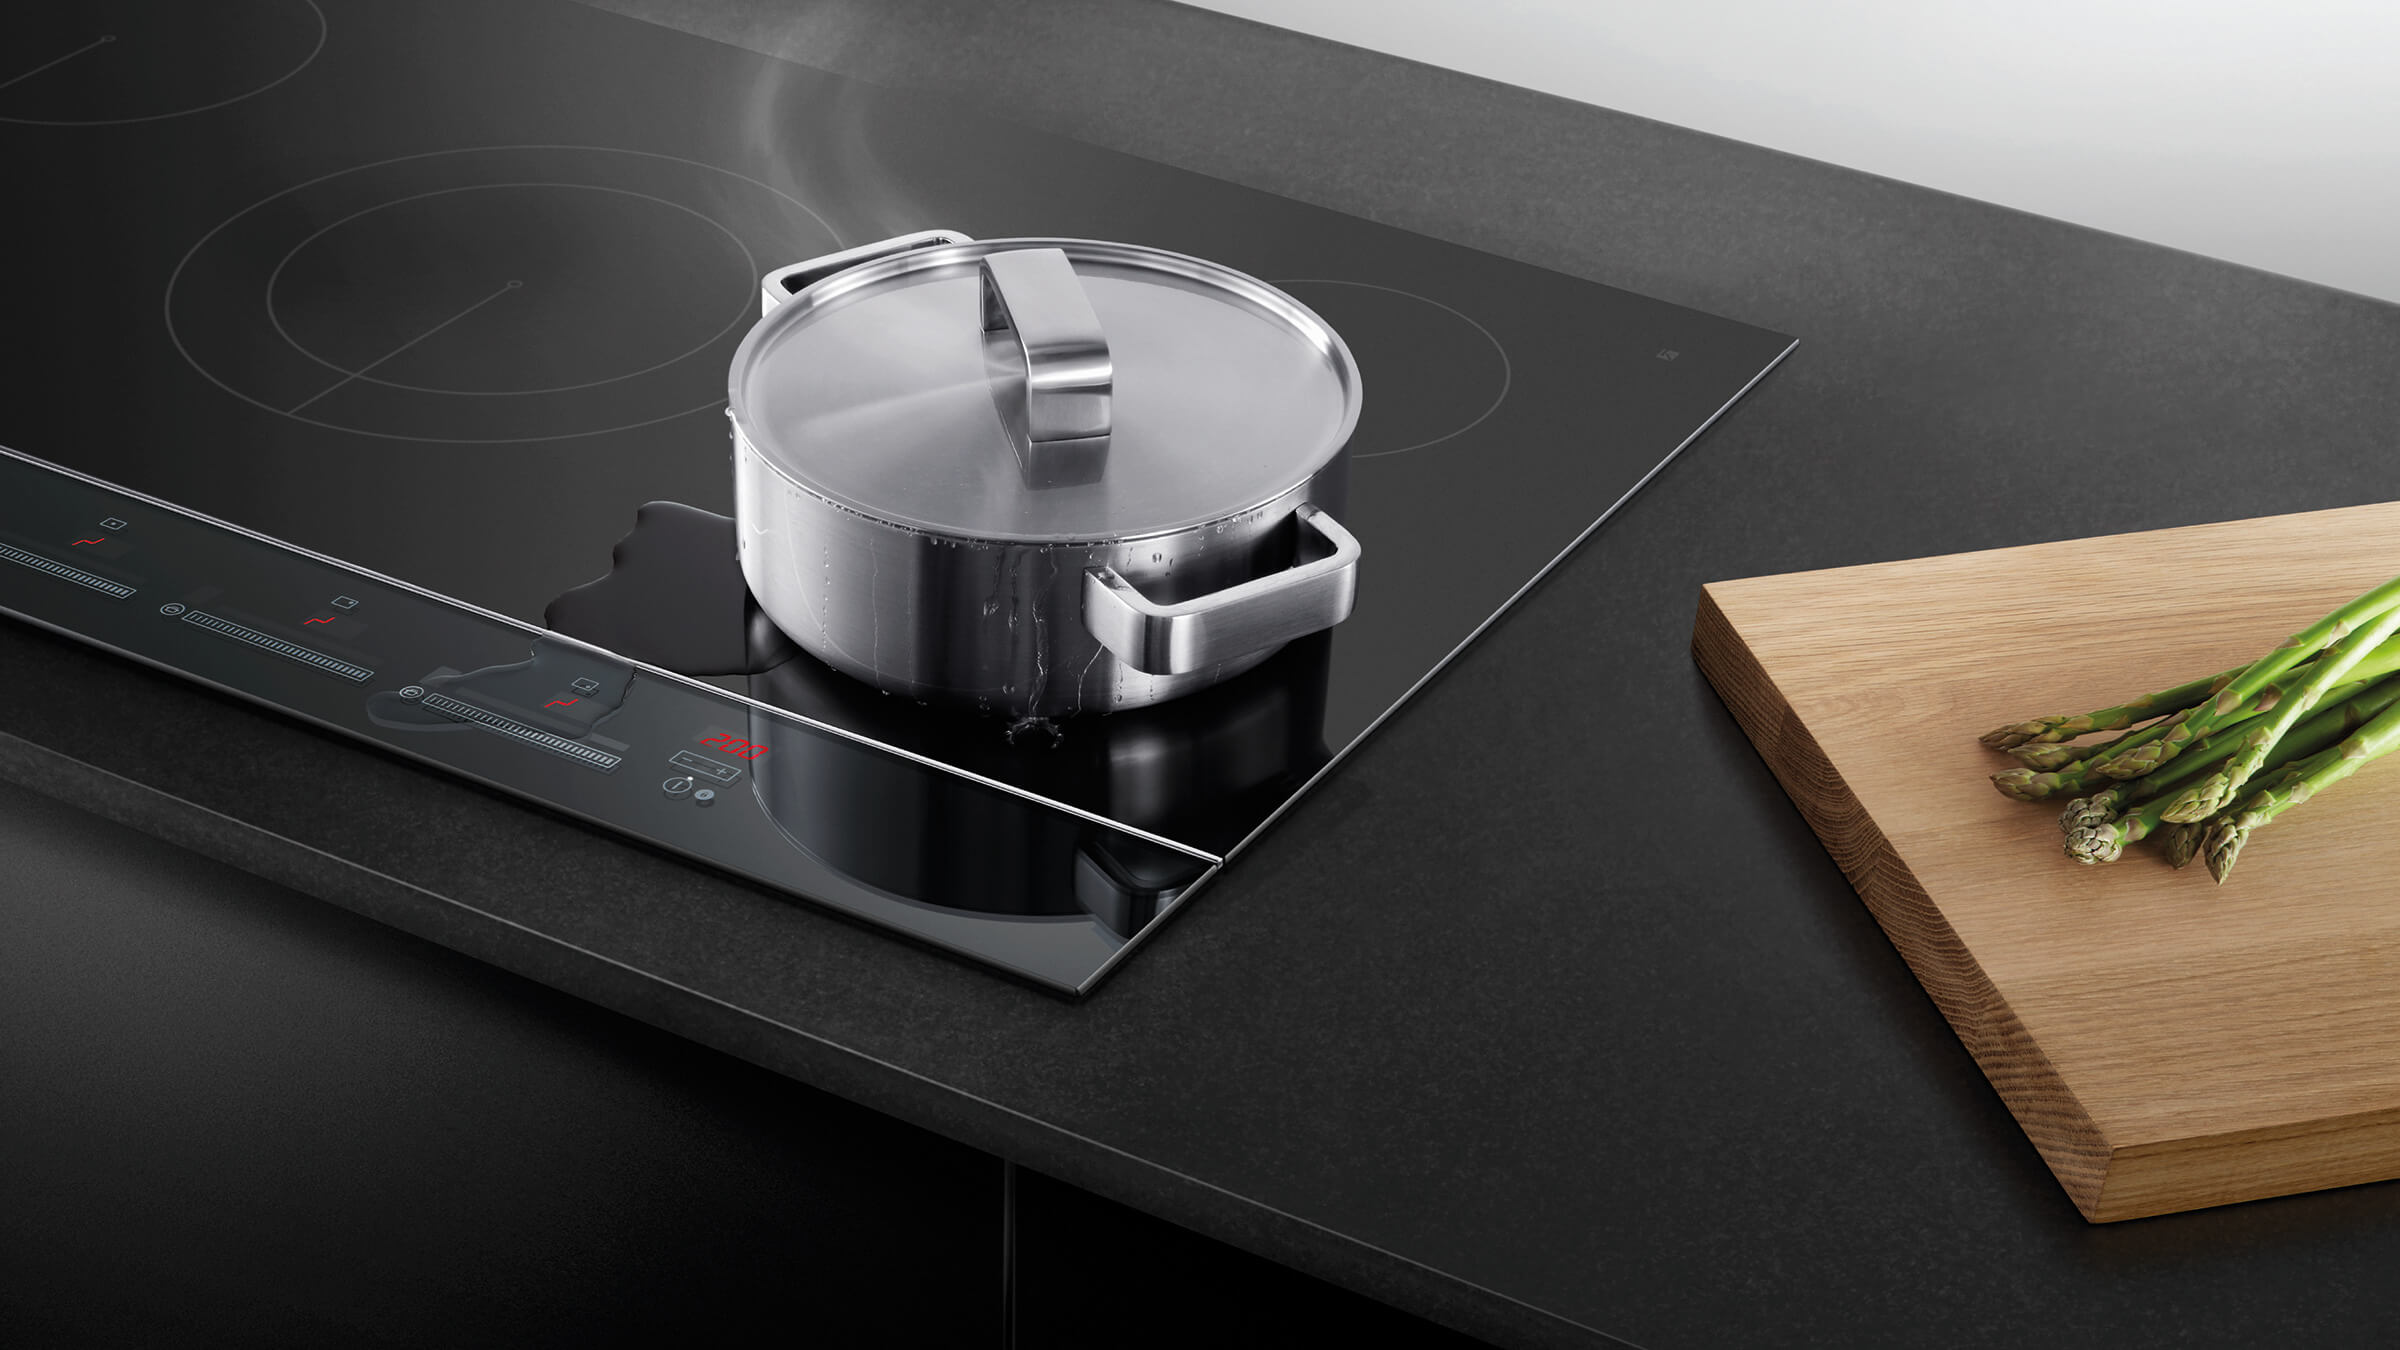 70cm Induction Cooktop Ci704ctb1 Fisher Paykel 70cm 4 Zone Induction Cooktop